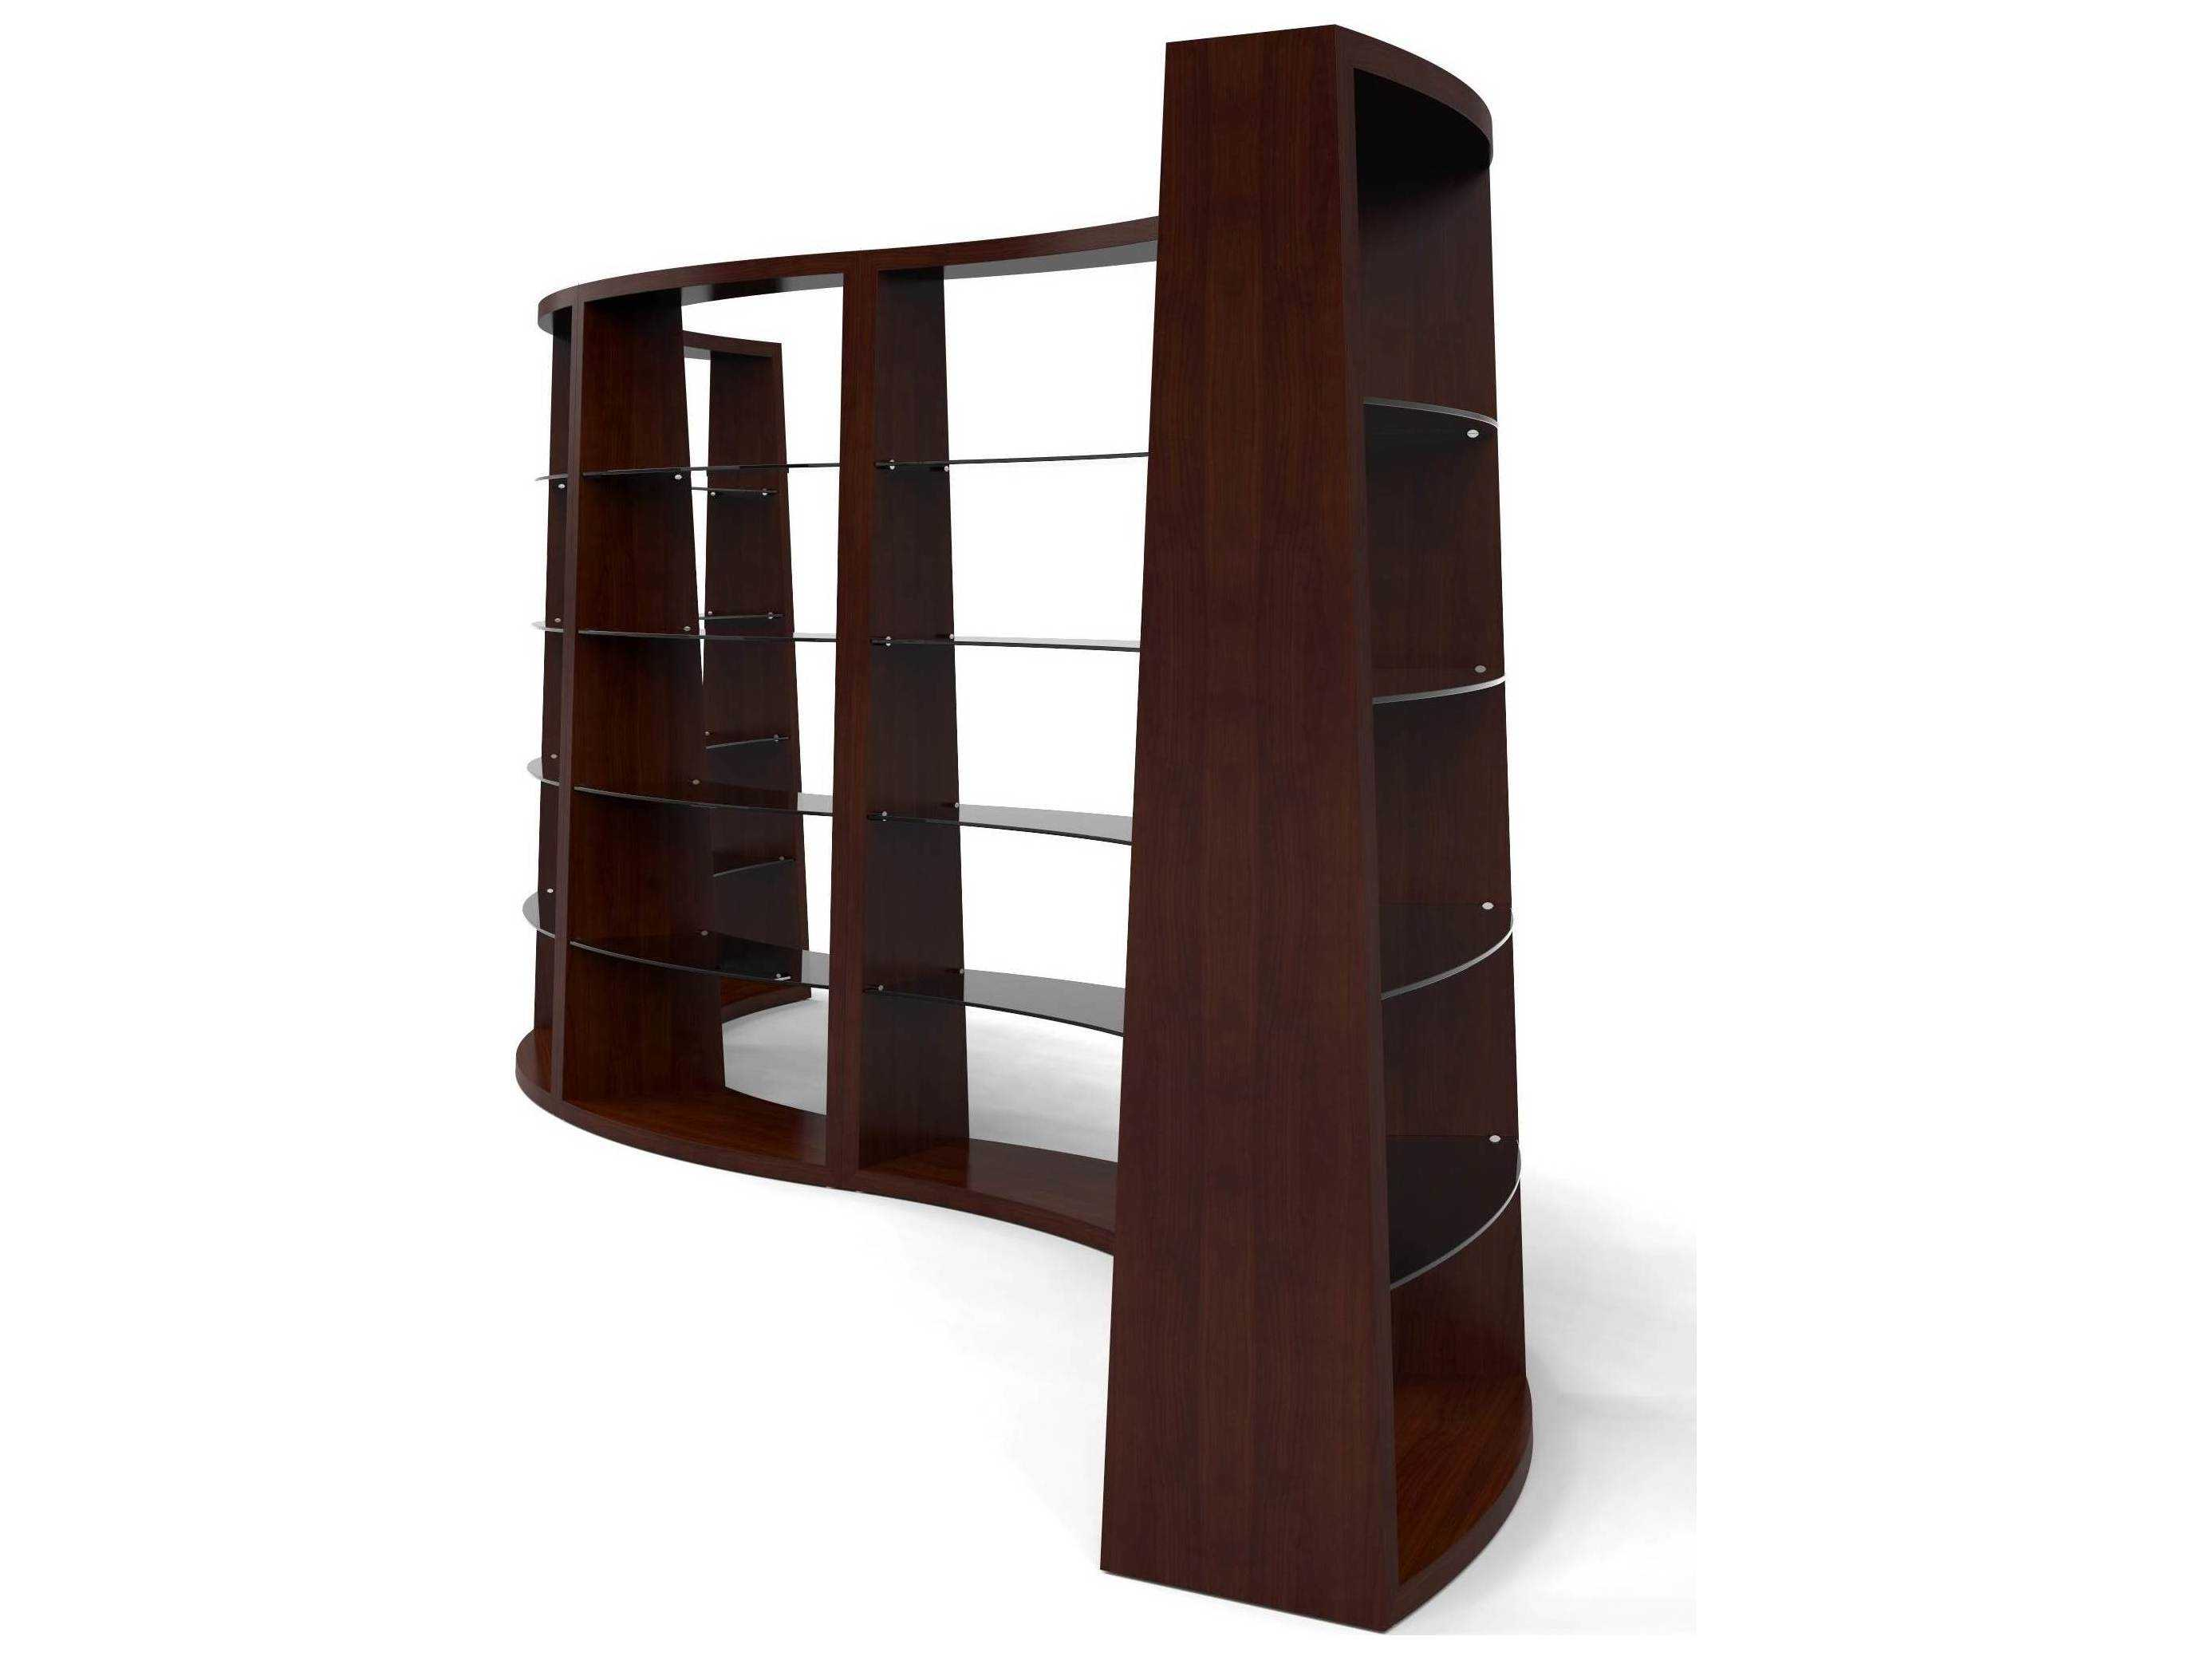 set preview shop rose clear add saumon babou bella ubabub bookcase of shelf cart book pre to leo acrylic booksee